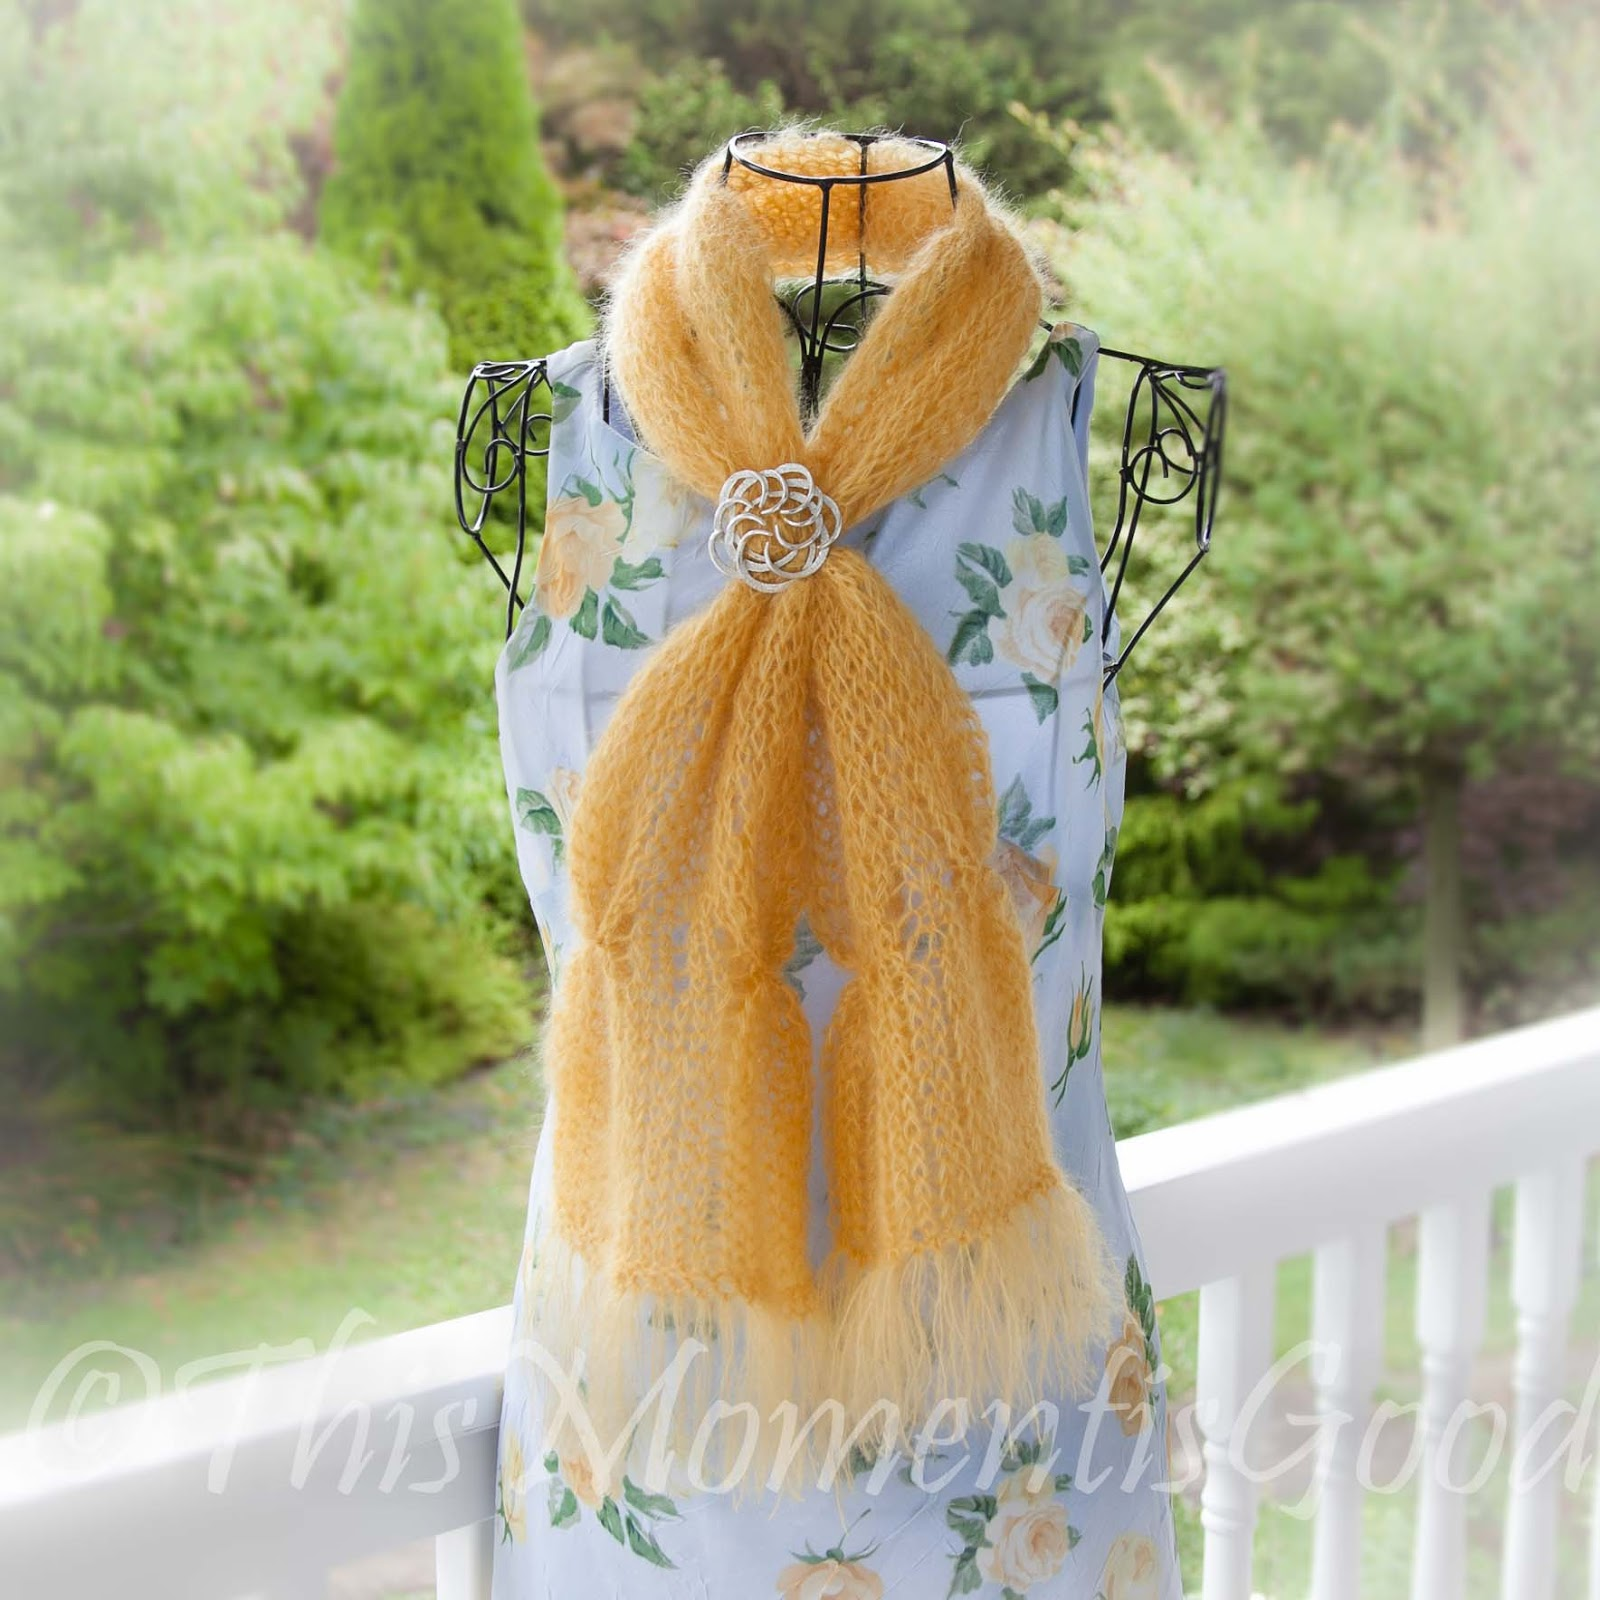 Free Knitting Patterns For Mohair Scarves : Loom Knitting by This Moment is Good!: FREE LOOM KNIT MOHAIR SCARF PATTERN!